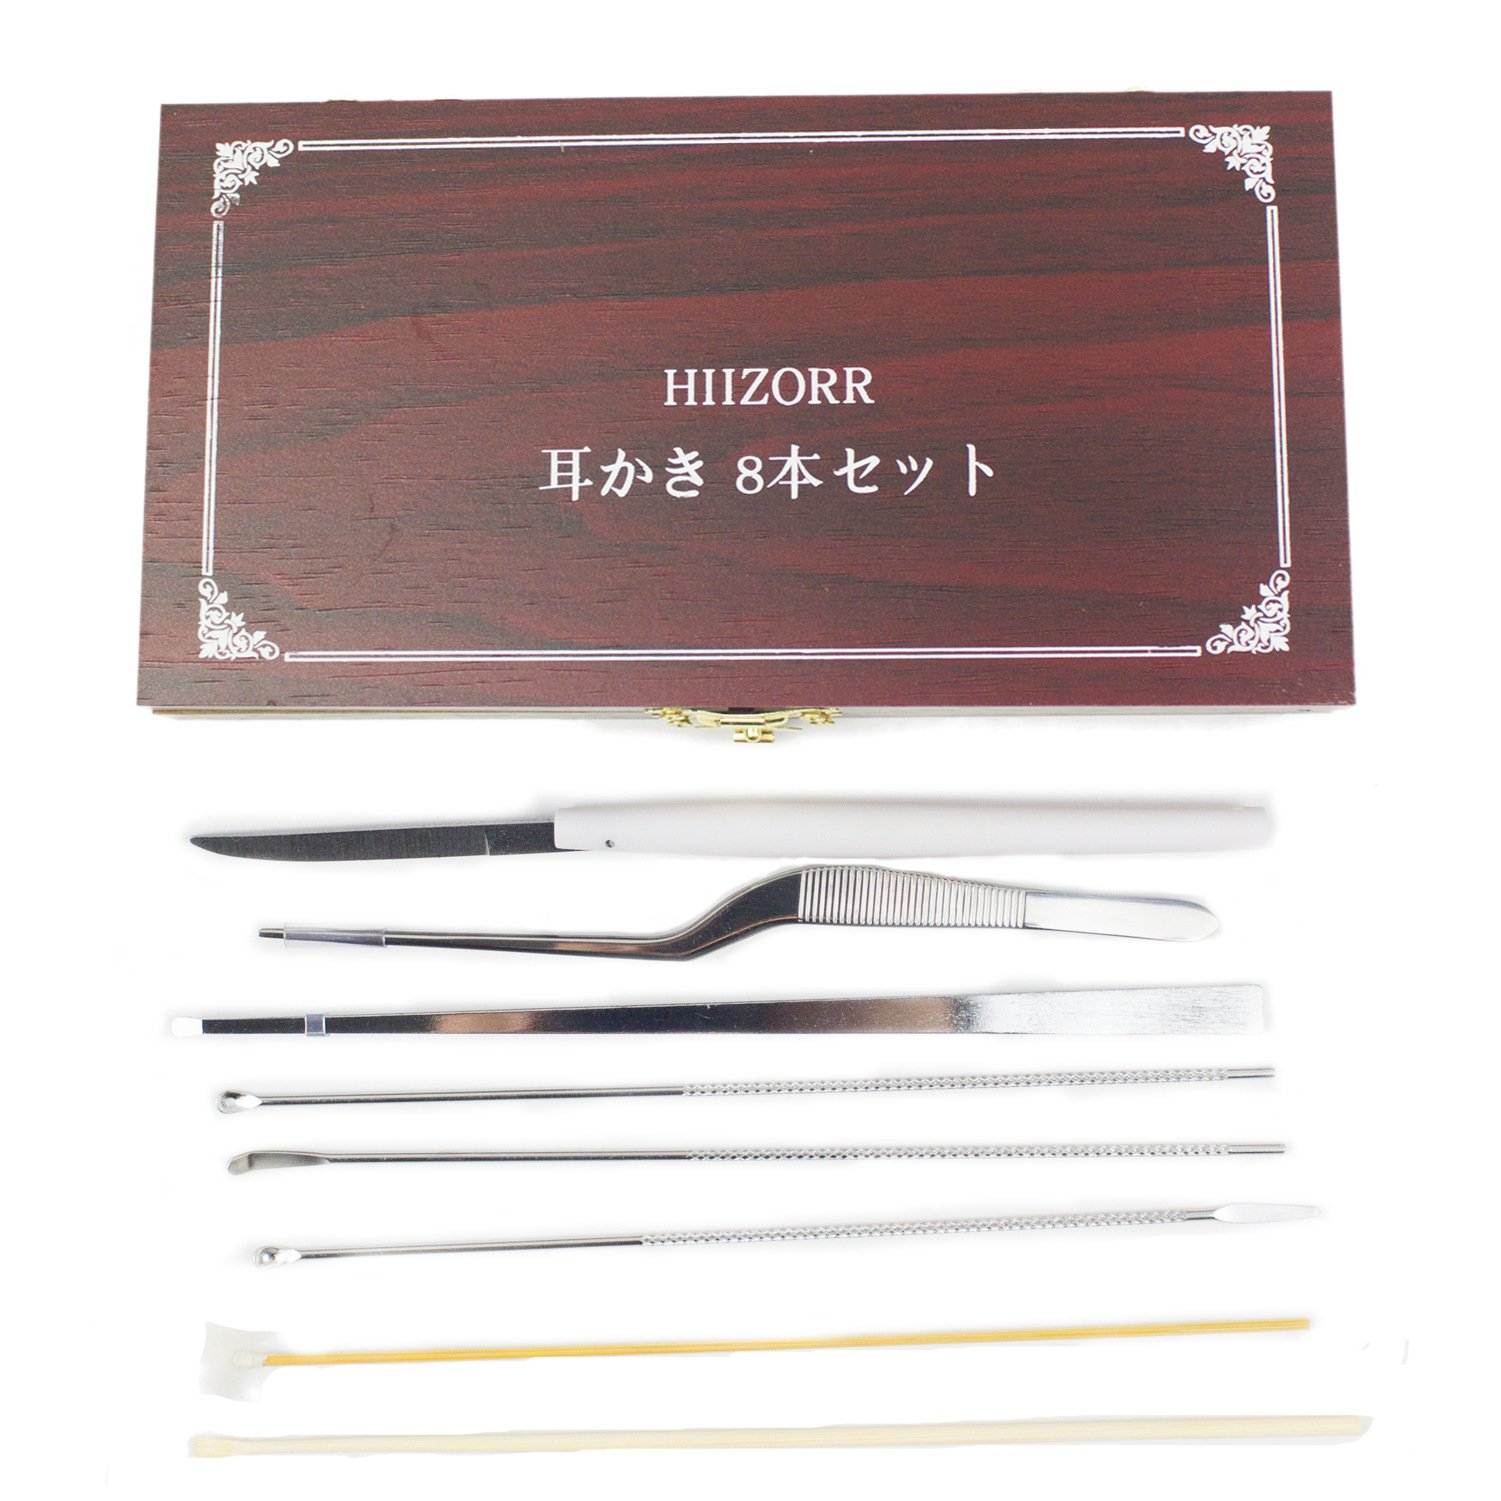 Earwax Removal 8pcs Ear Pick Ear Curette |Respecting Stainless Steel Ear Wax Removal Kit with Wooden Srotage Box